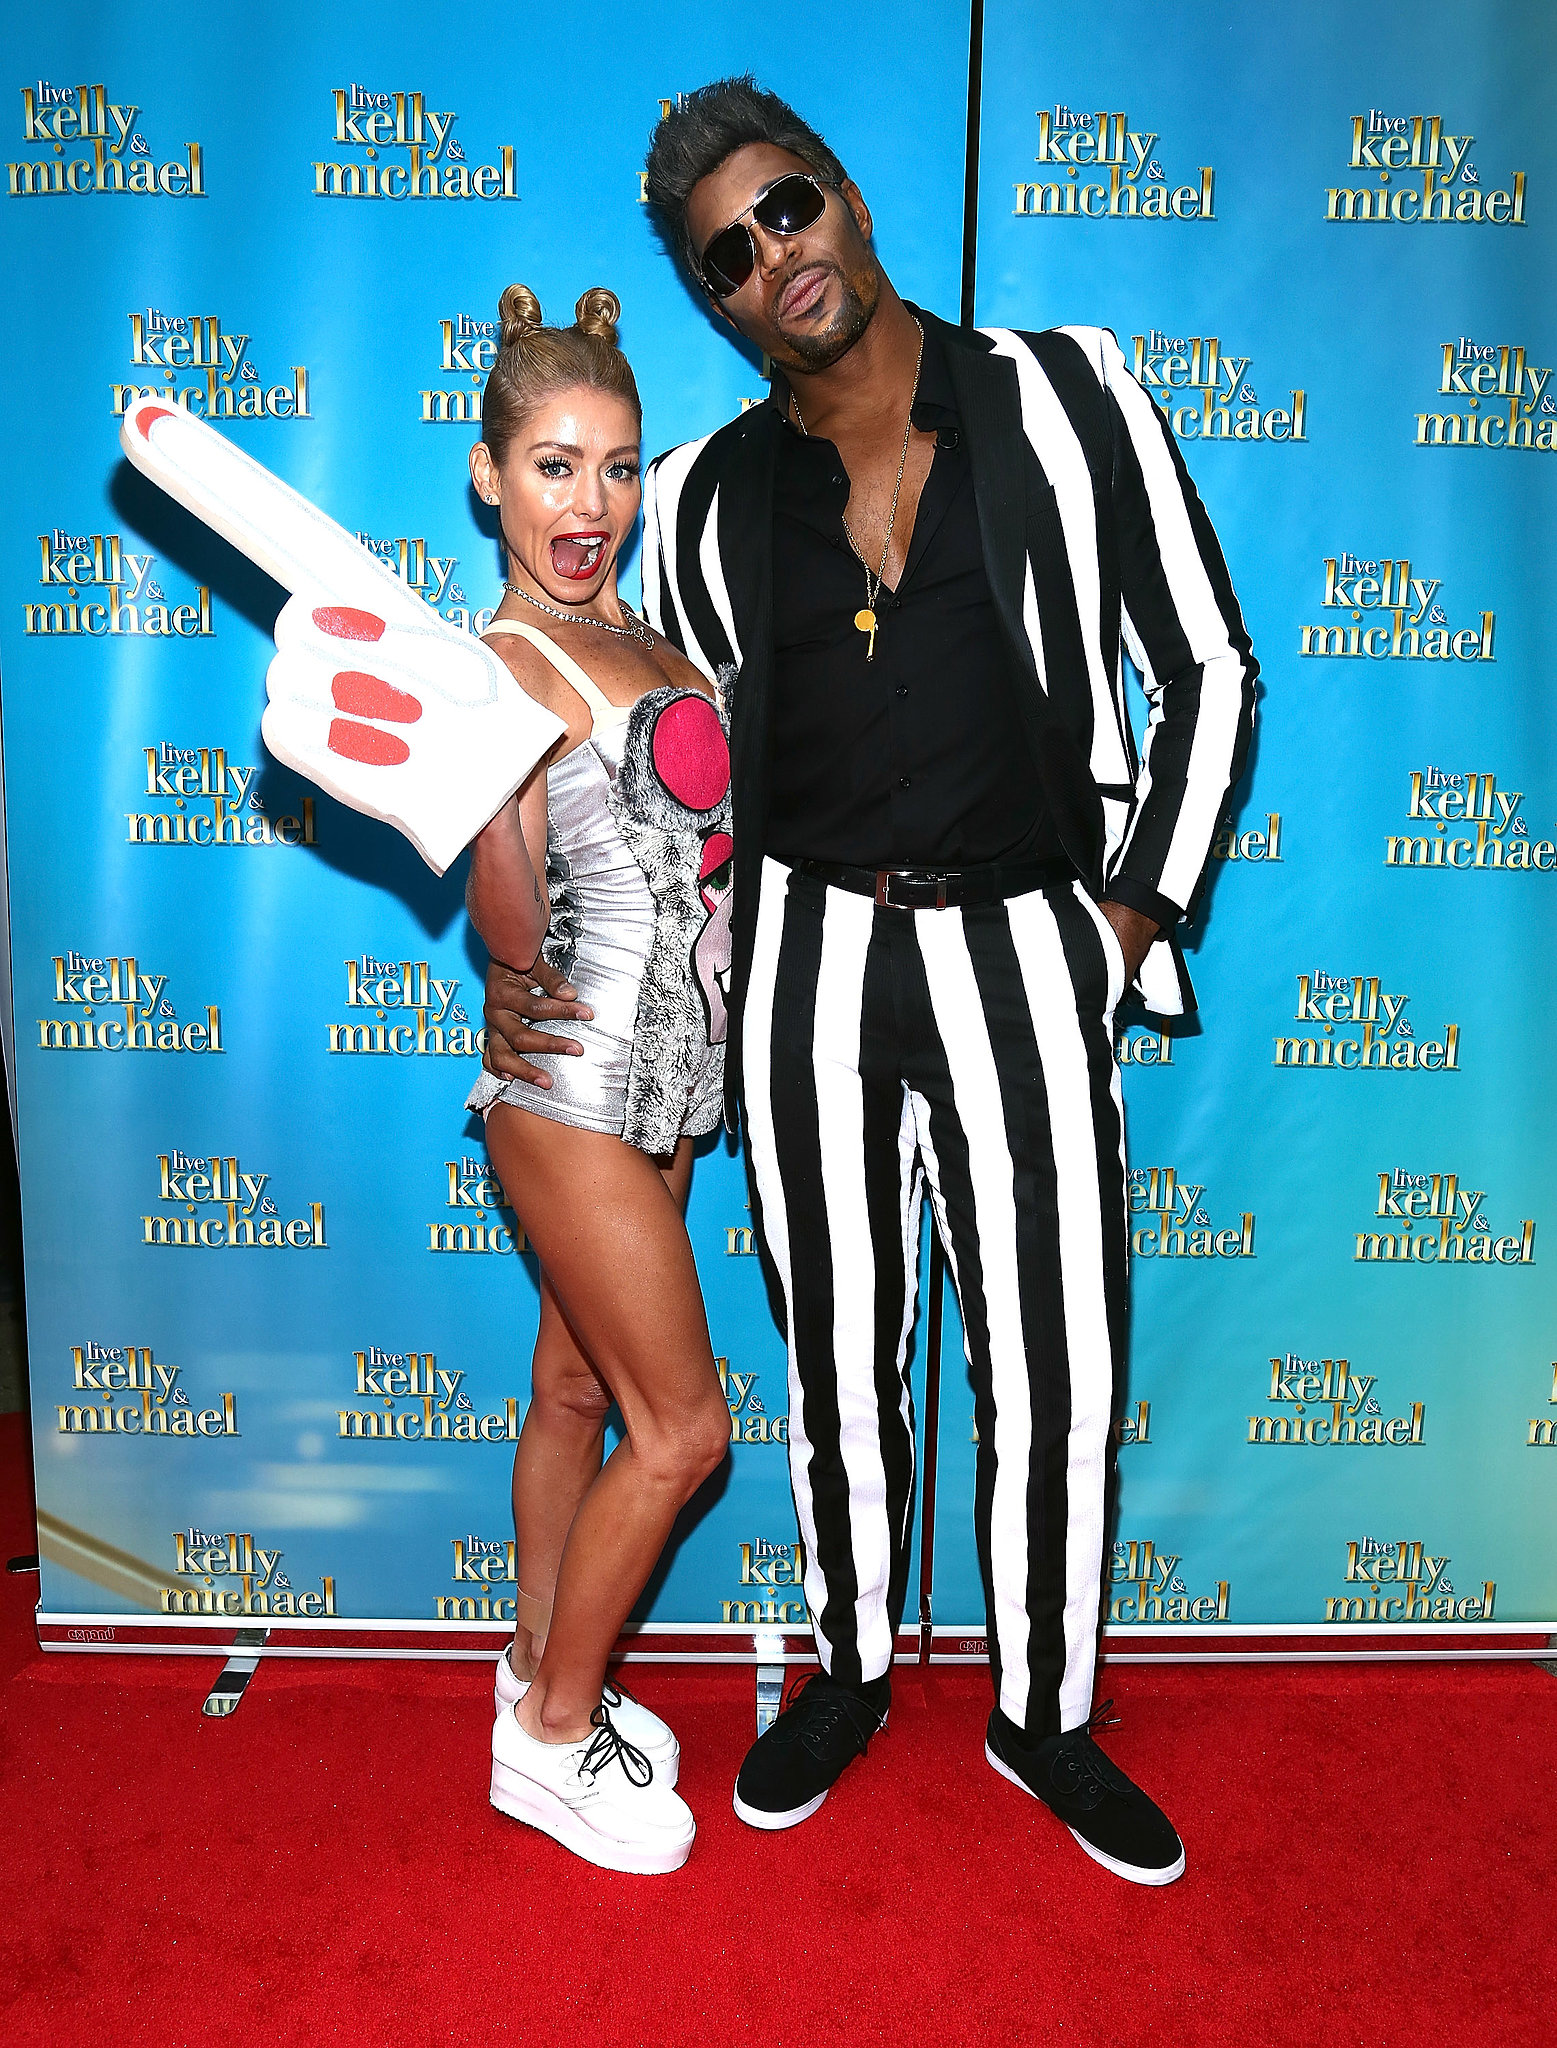 Kelly Ripa and Michael Strahan were Miley Cyrus and Robin Thicke for Halloween.